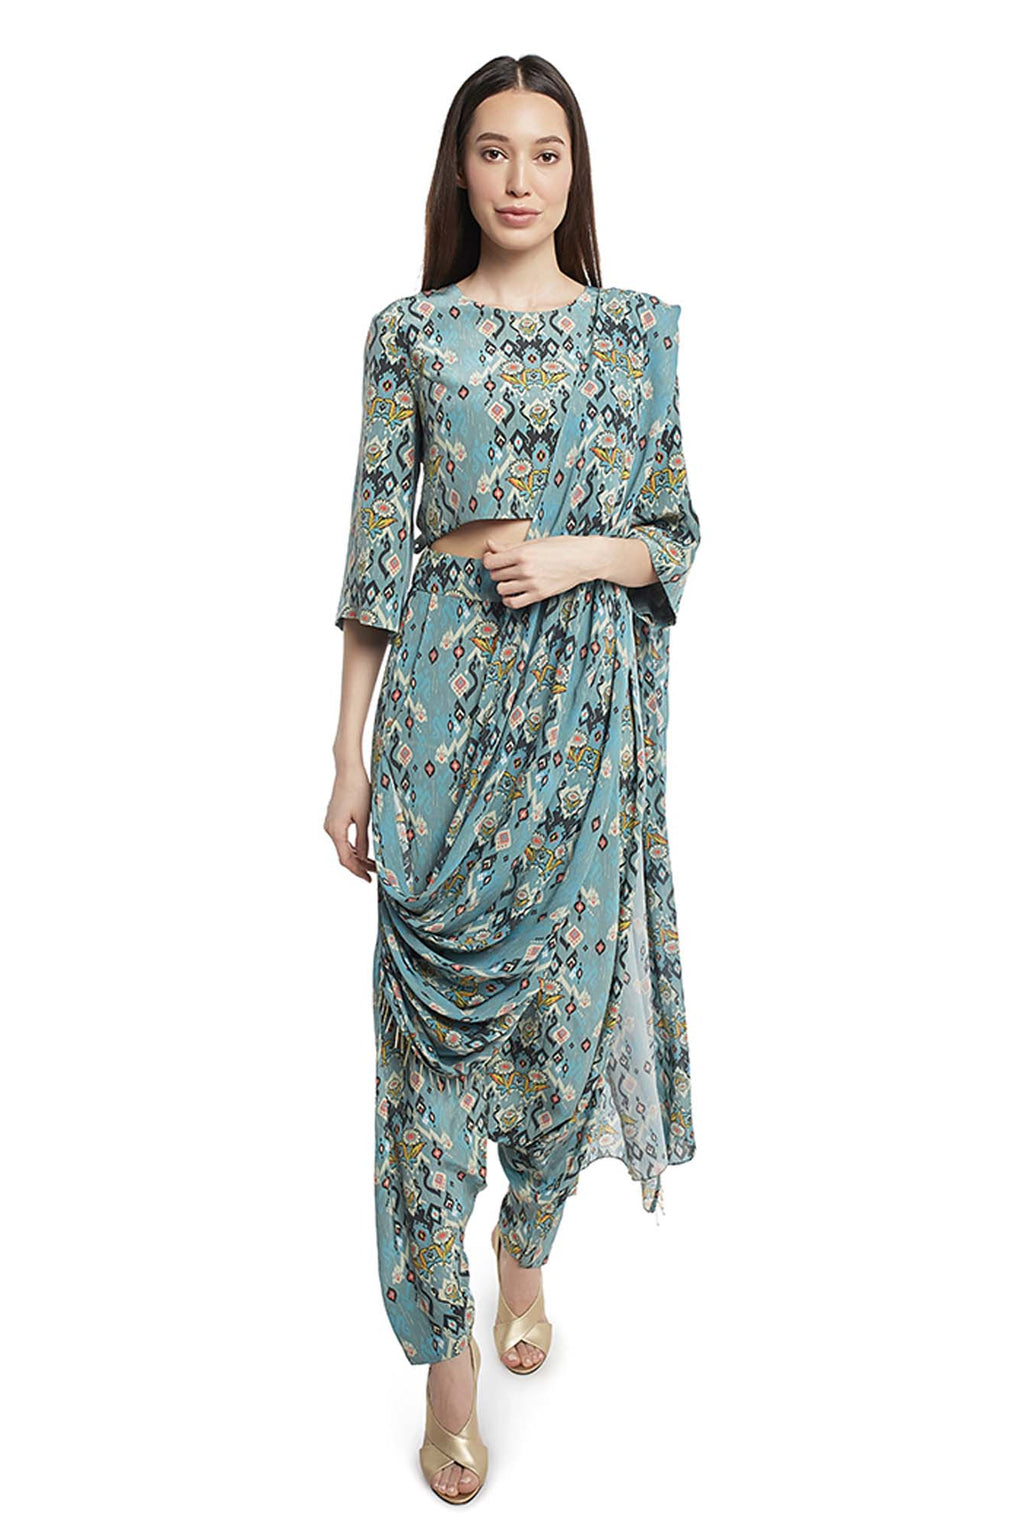 Blue Printed Crepe Crop Top and Low Crotch Pant with Attached Georgette Drape - Riviera Closet